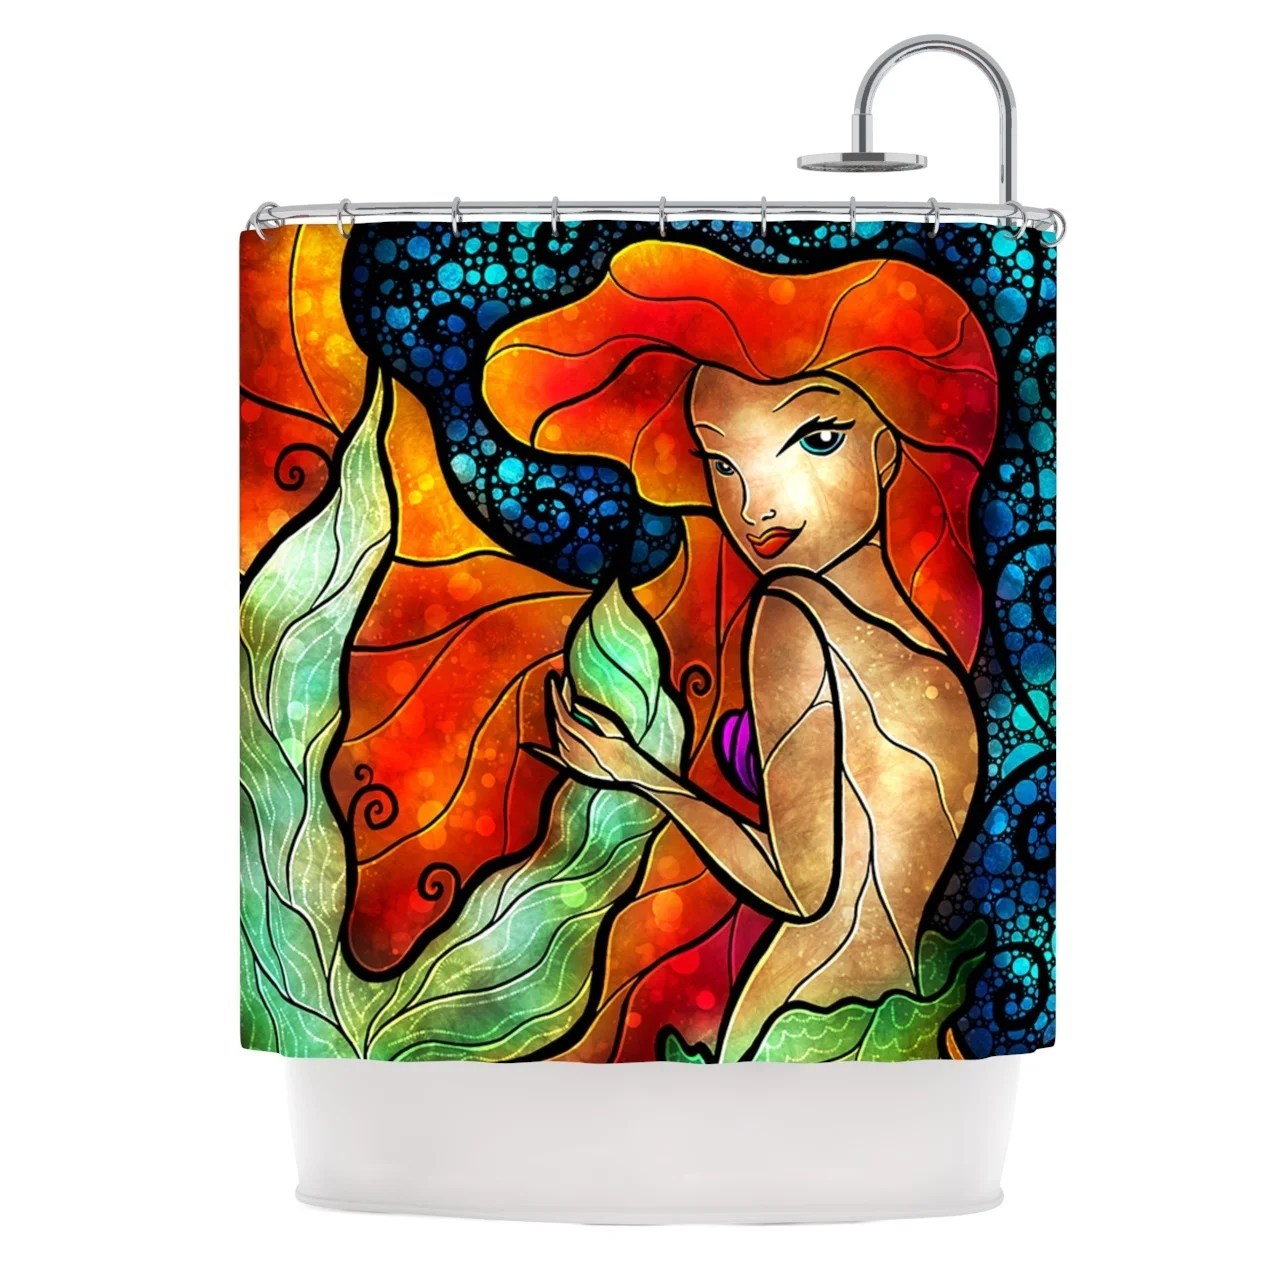 Ariel Shower Curtain Kess Inhouse Mandie Manzano Ariel Mermaid Shower Curtain 69x70